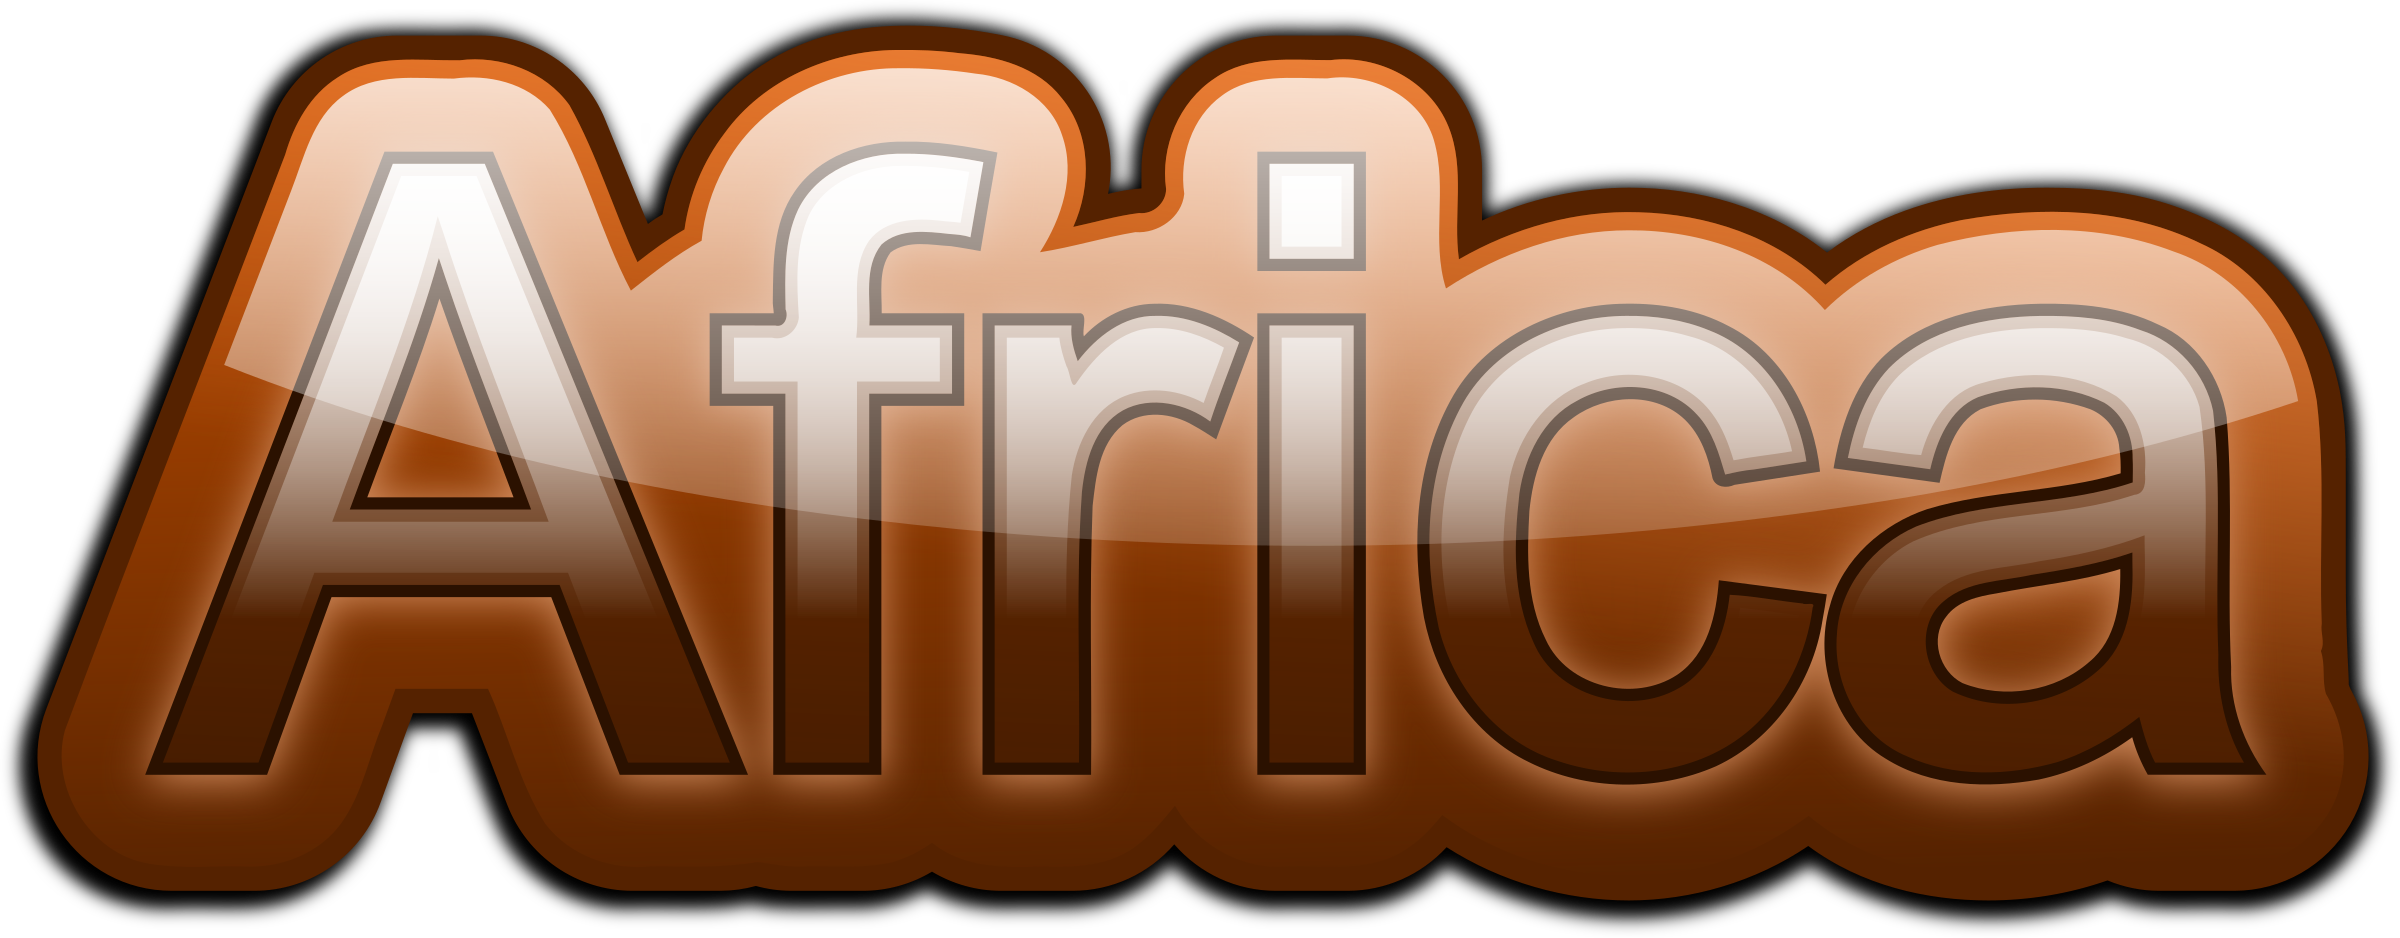 Africa text big image. African clipart word